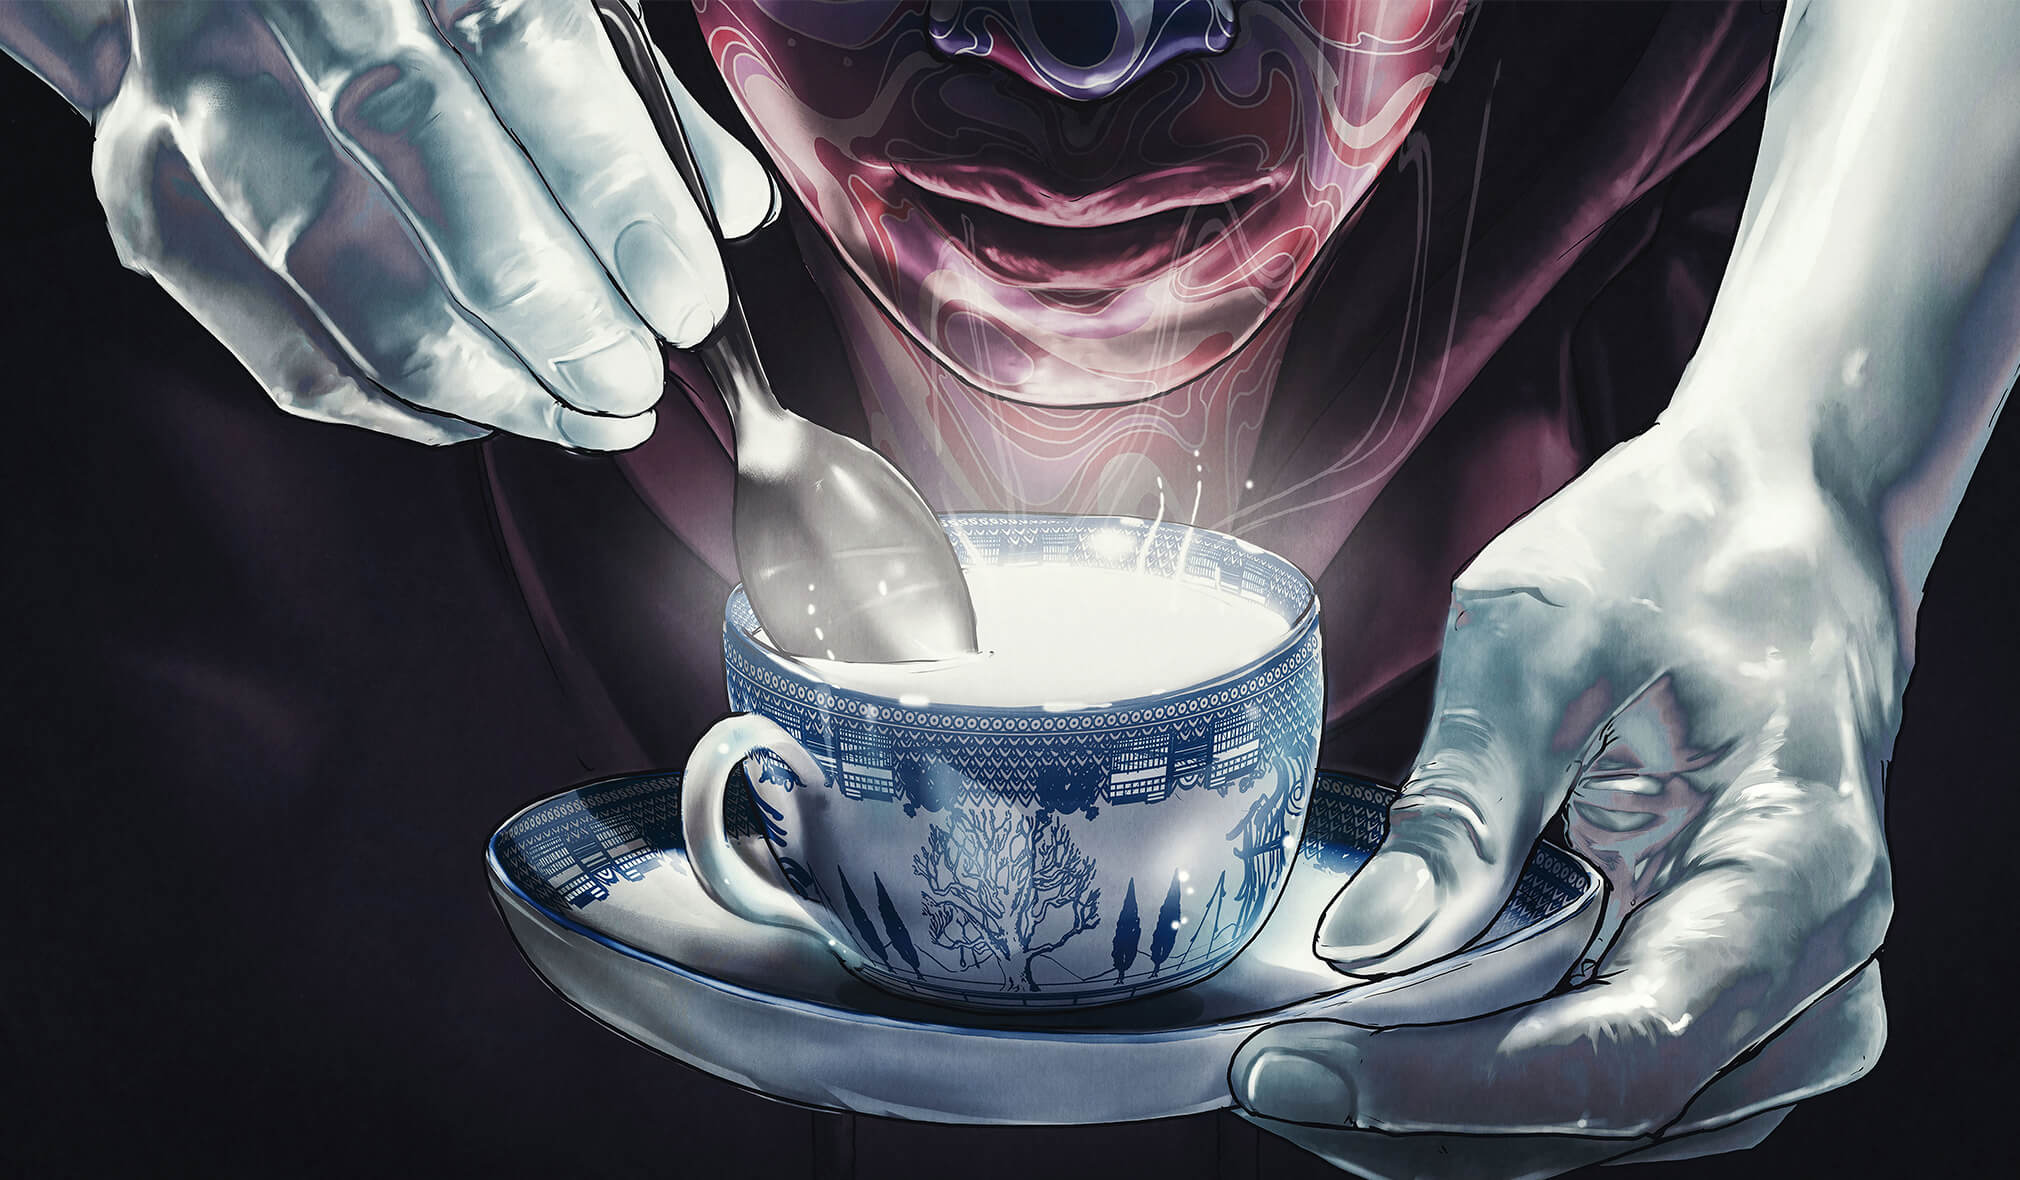 A purple, marble-faced Chris leans over a glowing white porcelain teacup; from the darkness two white hands emerge stirring the spoon.